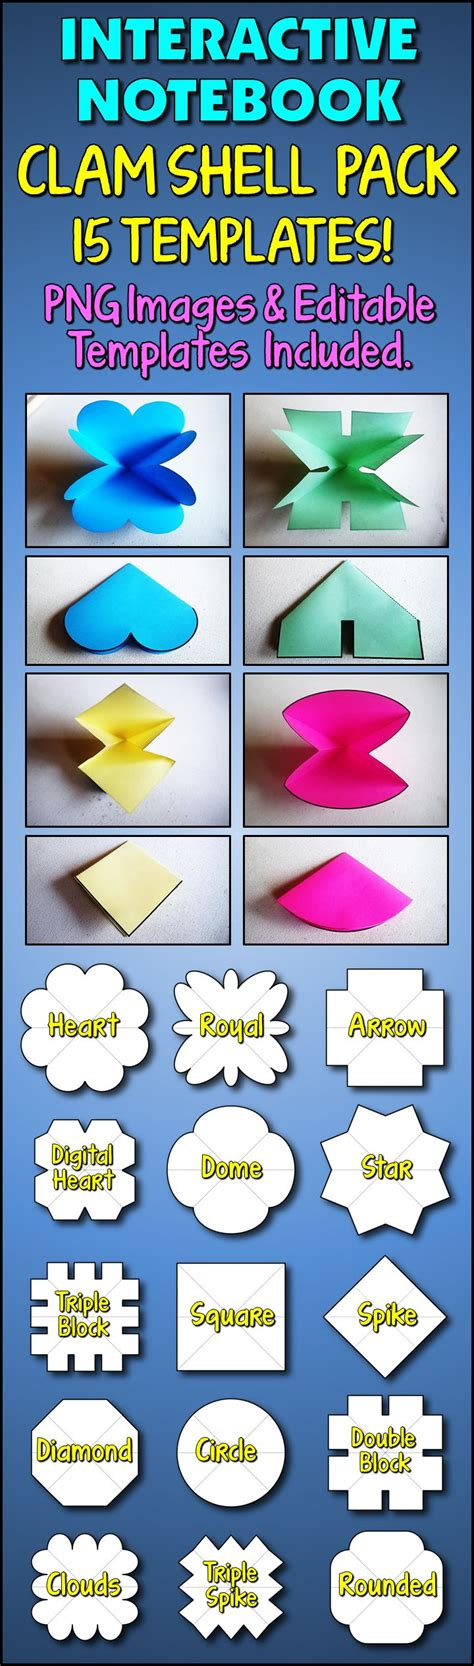 clam shell templates lapbook 17 best ideas about clam shells on pinterest art